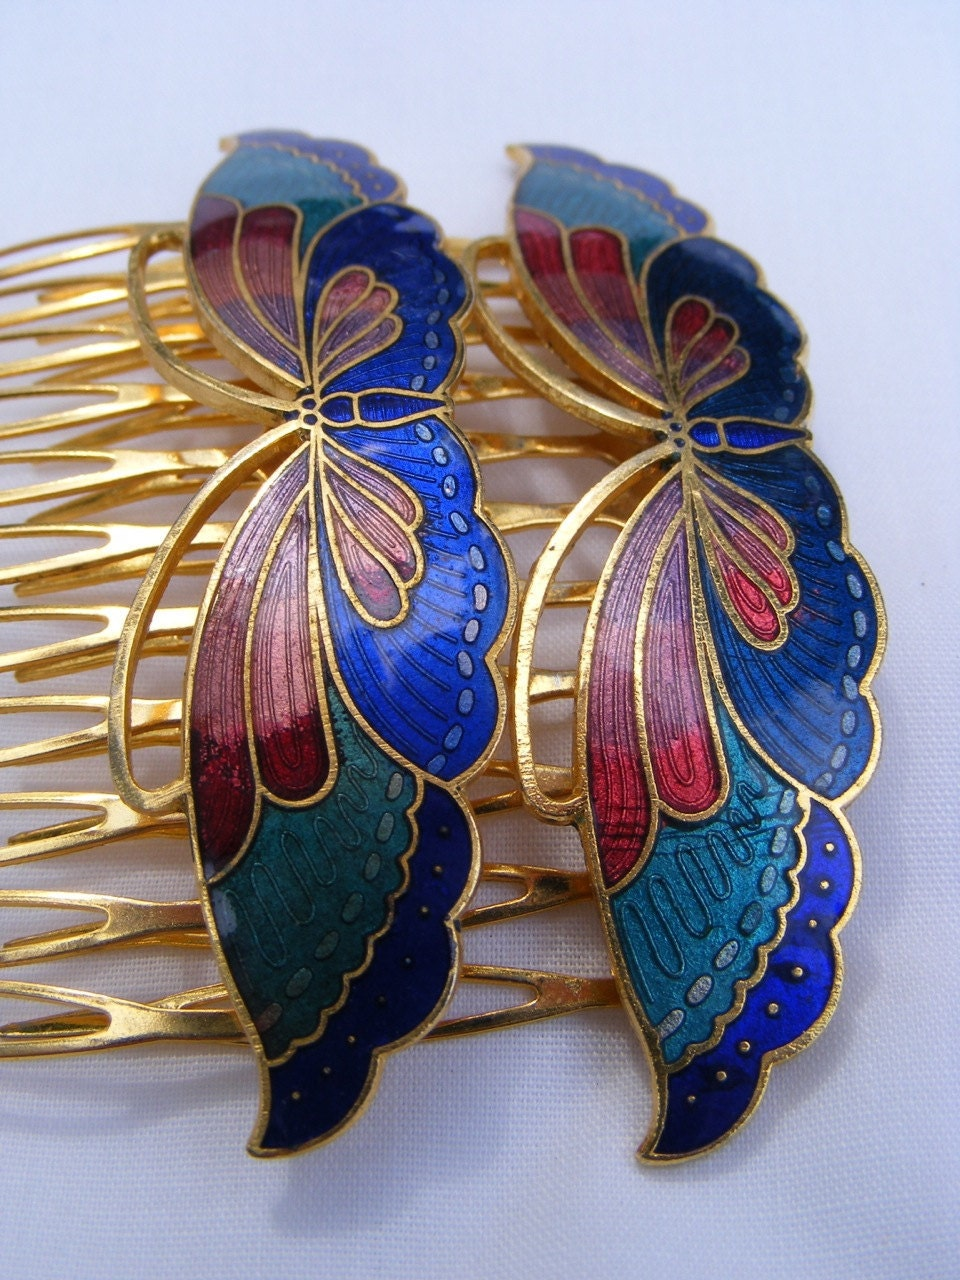 Vintage Cloisonne Enamel Butterfly Hair Combs, set of 2